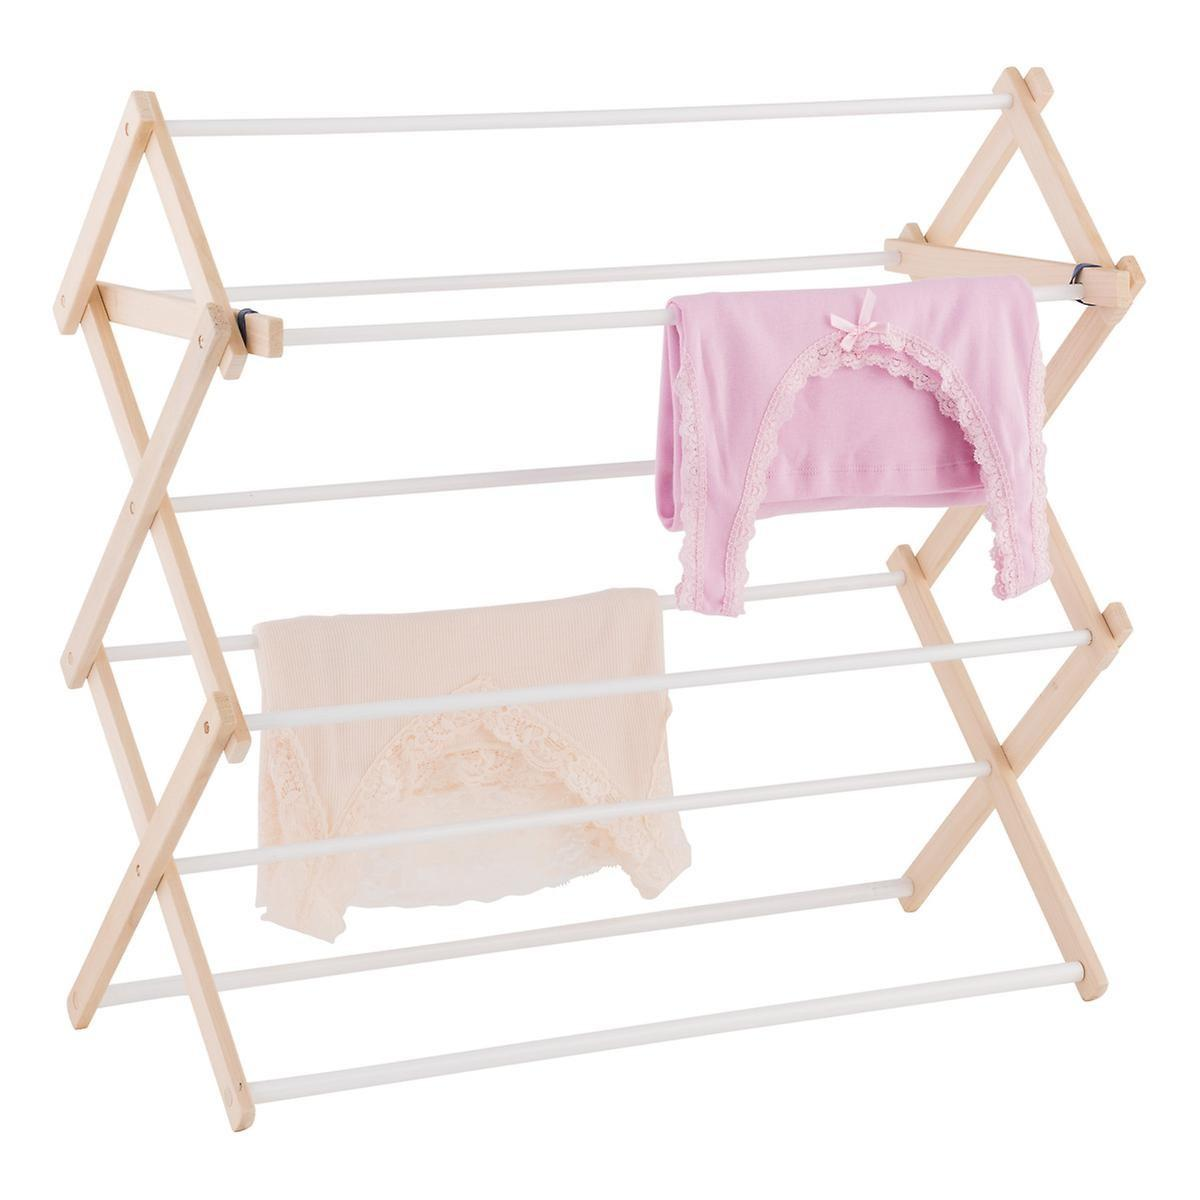 Rack Surprising Drying Home Clothes